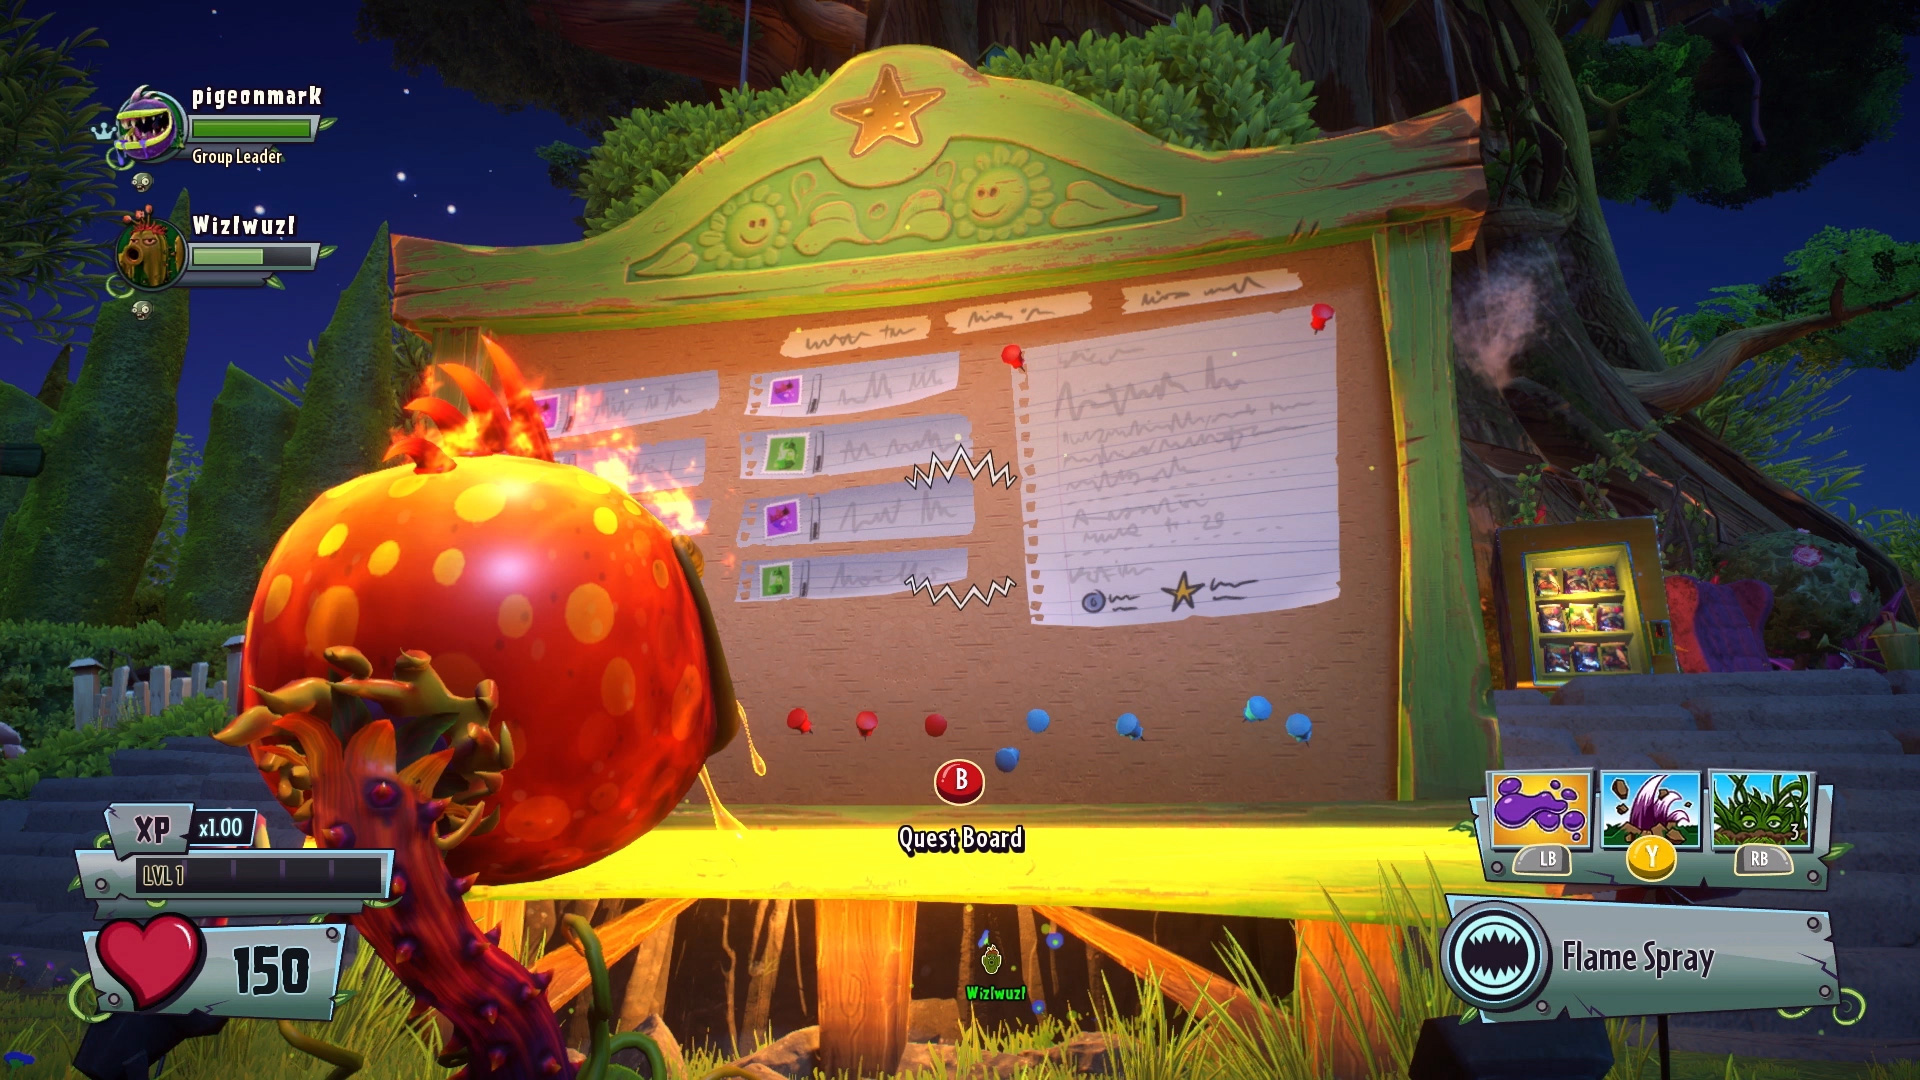 Xp and progression in plants vs zombies garden warfare 2 Plants vs zombies garden warfare 2 event calendar